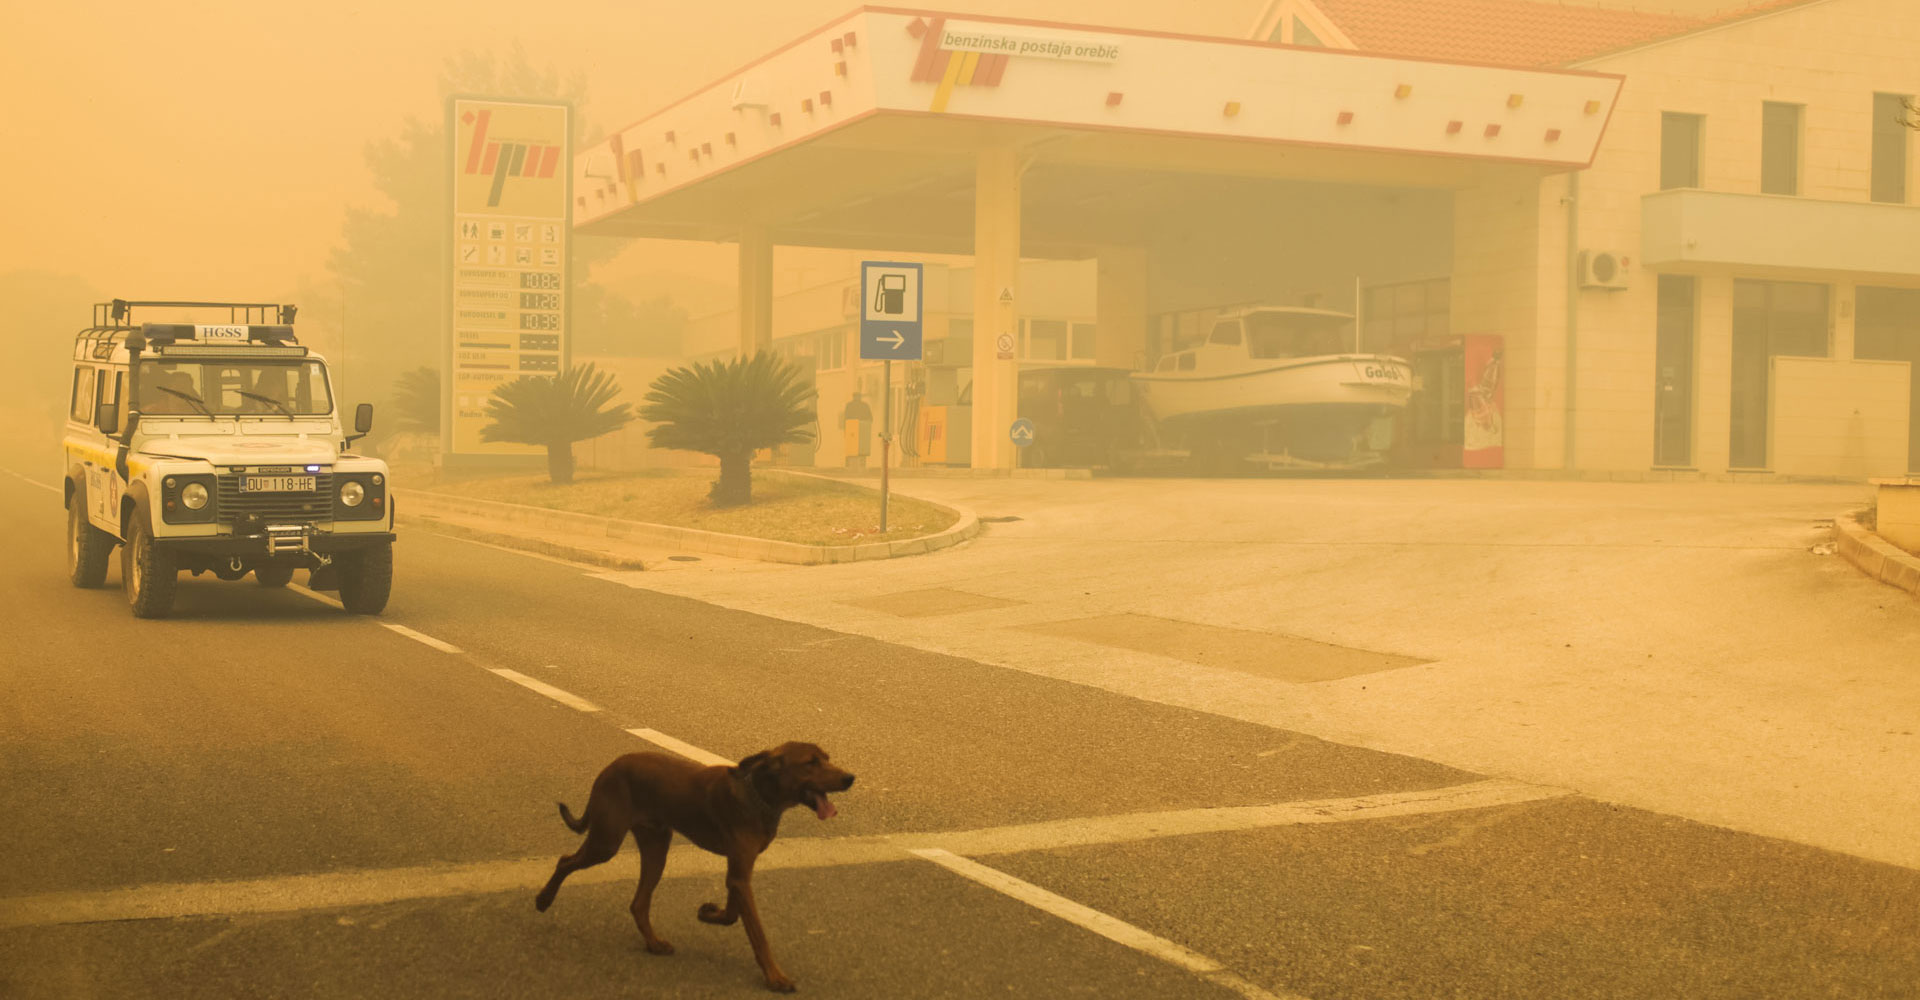 A forest fire in Croatia turns the coastline into a post-apocalyptic vision